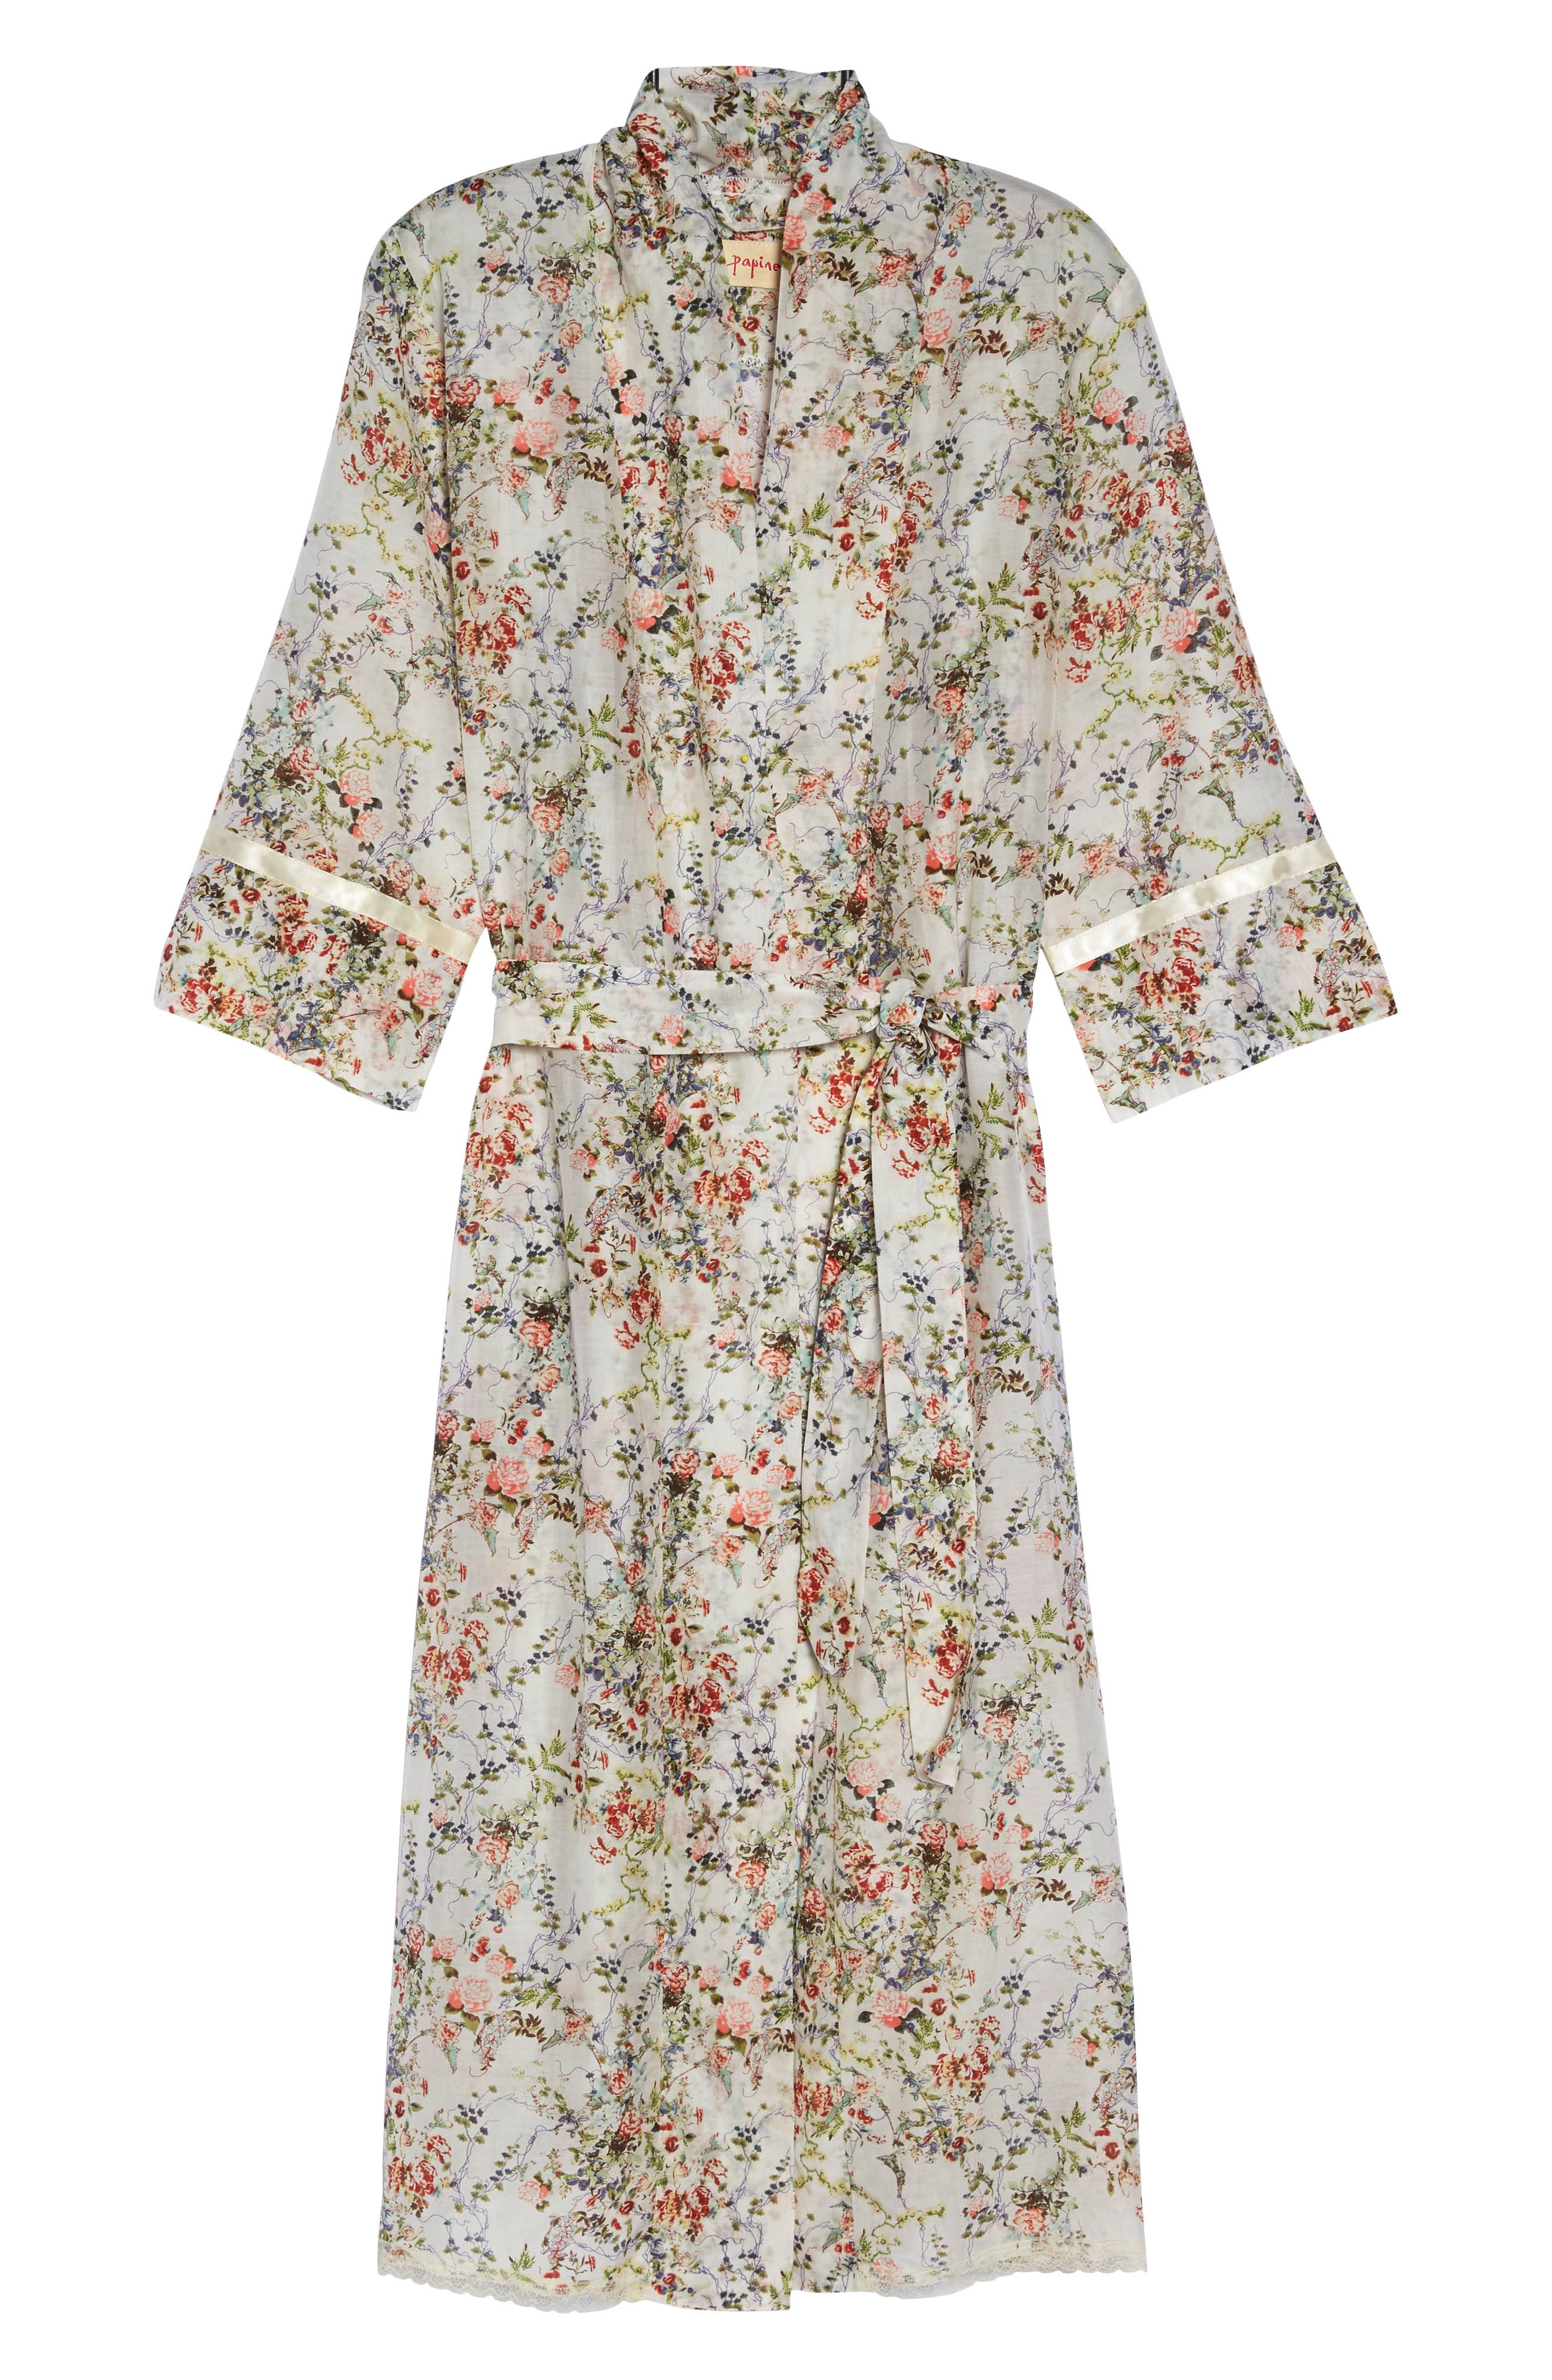 Yolly Floral Cotton & Silk Robe,                             Alternate thumbnail 6, color,                             905